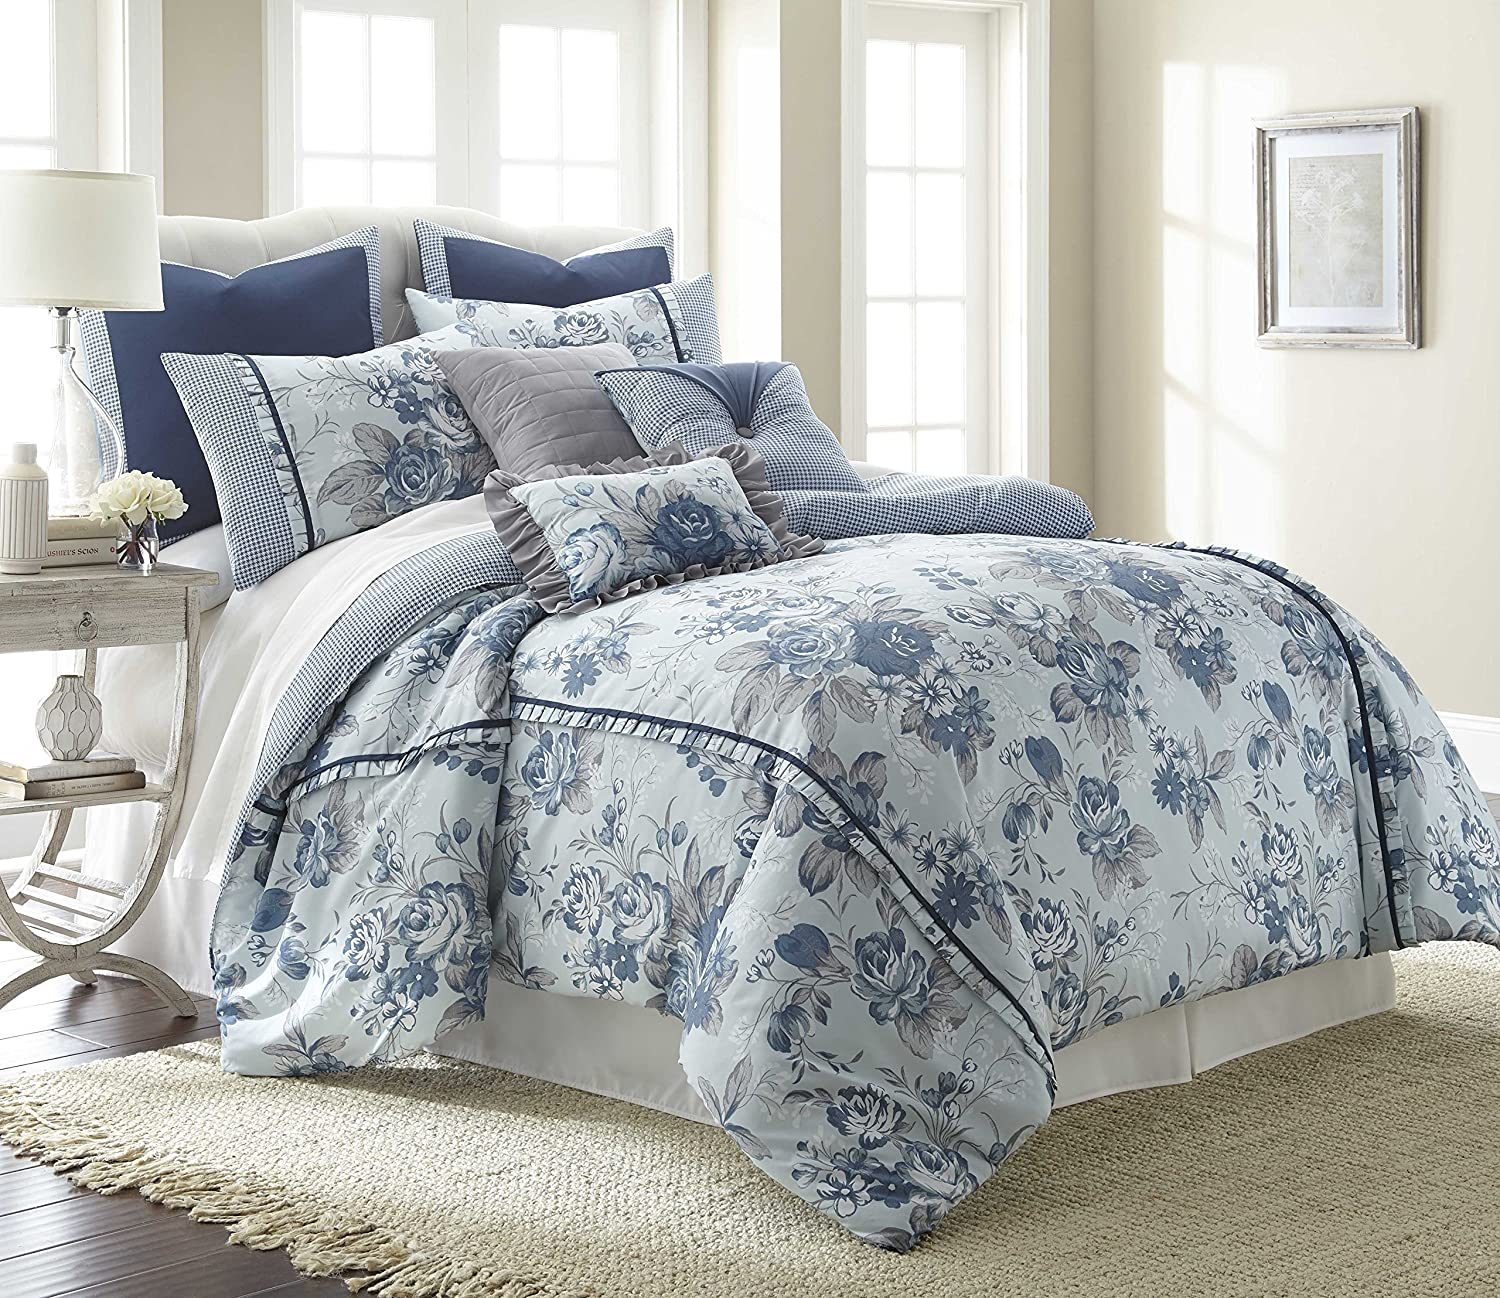 Amrapur Overseas Max 86% OFF New mail order Floral Farmhouse Comforter Set Queen 8-Piece